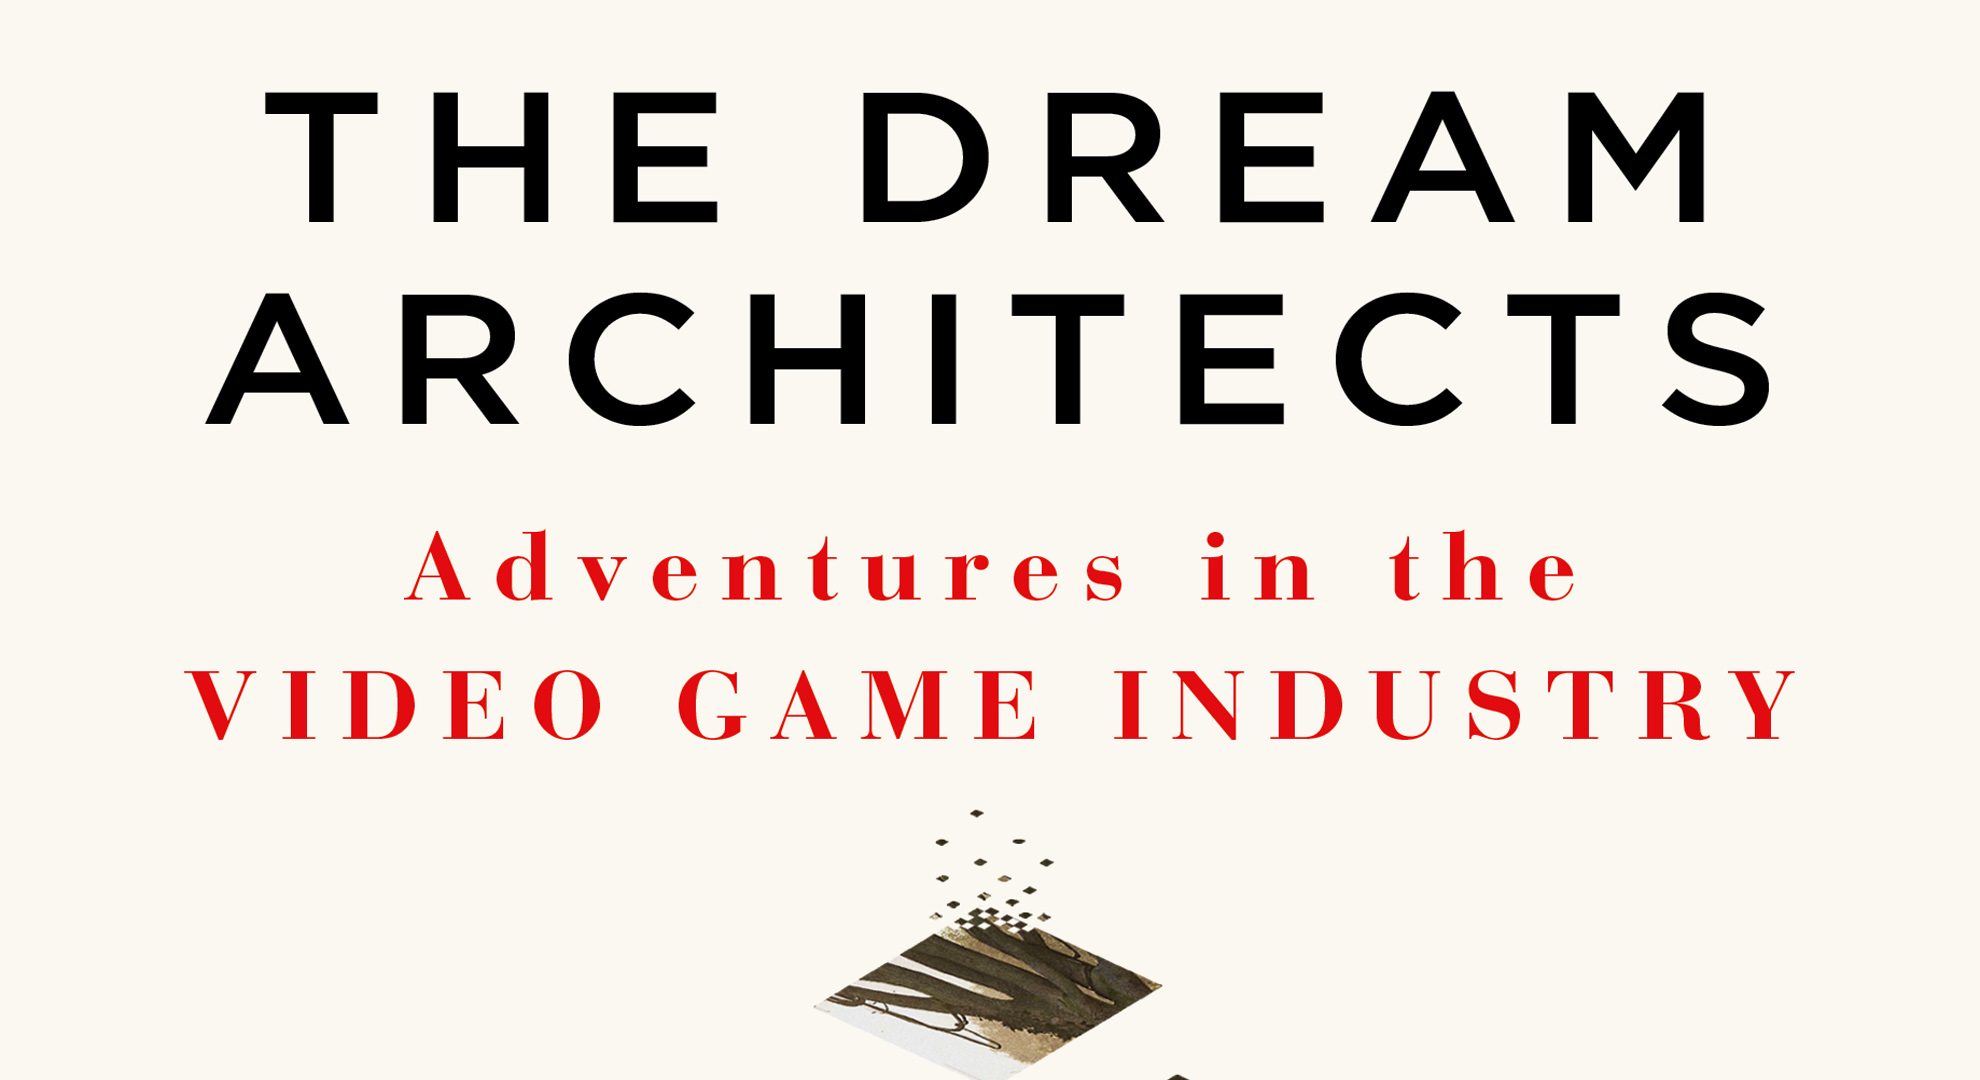 Architecture through the videogame industry